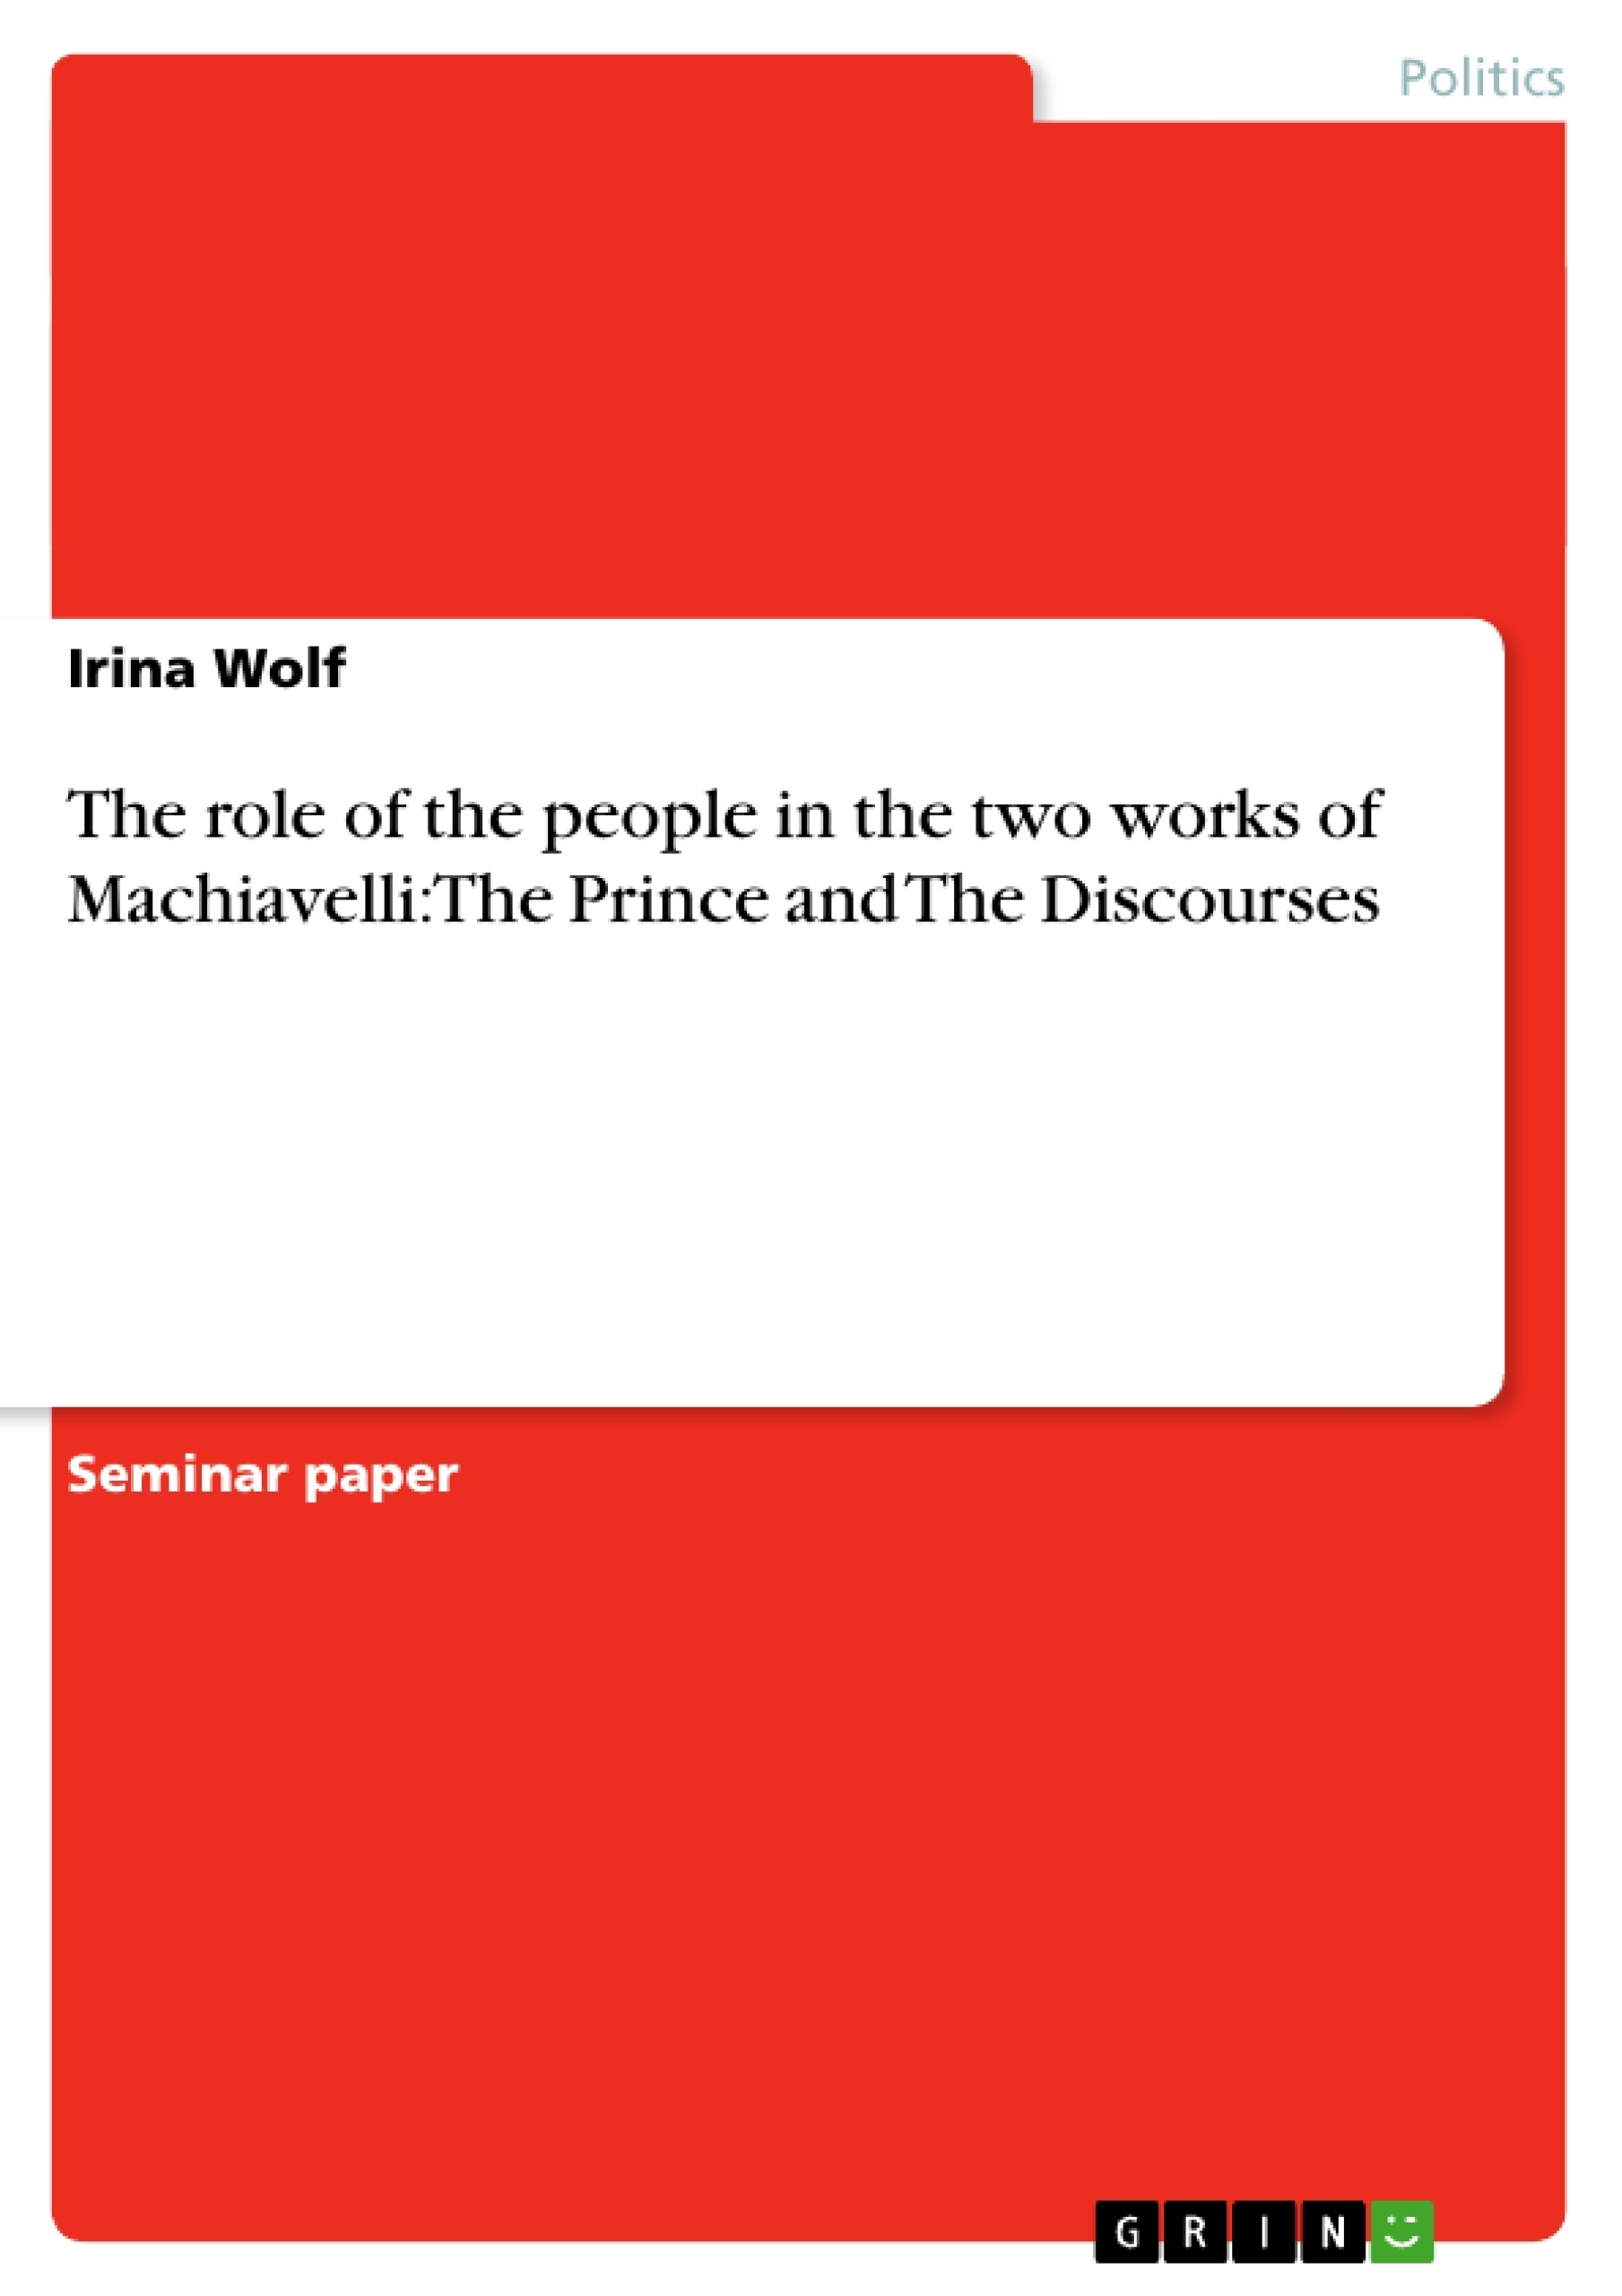 dissertation machiavelli the role of the people in the two works of machiavelli the prince grin publishing